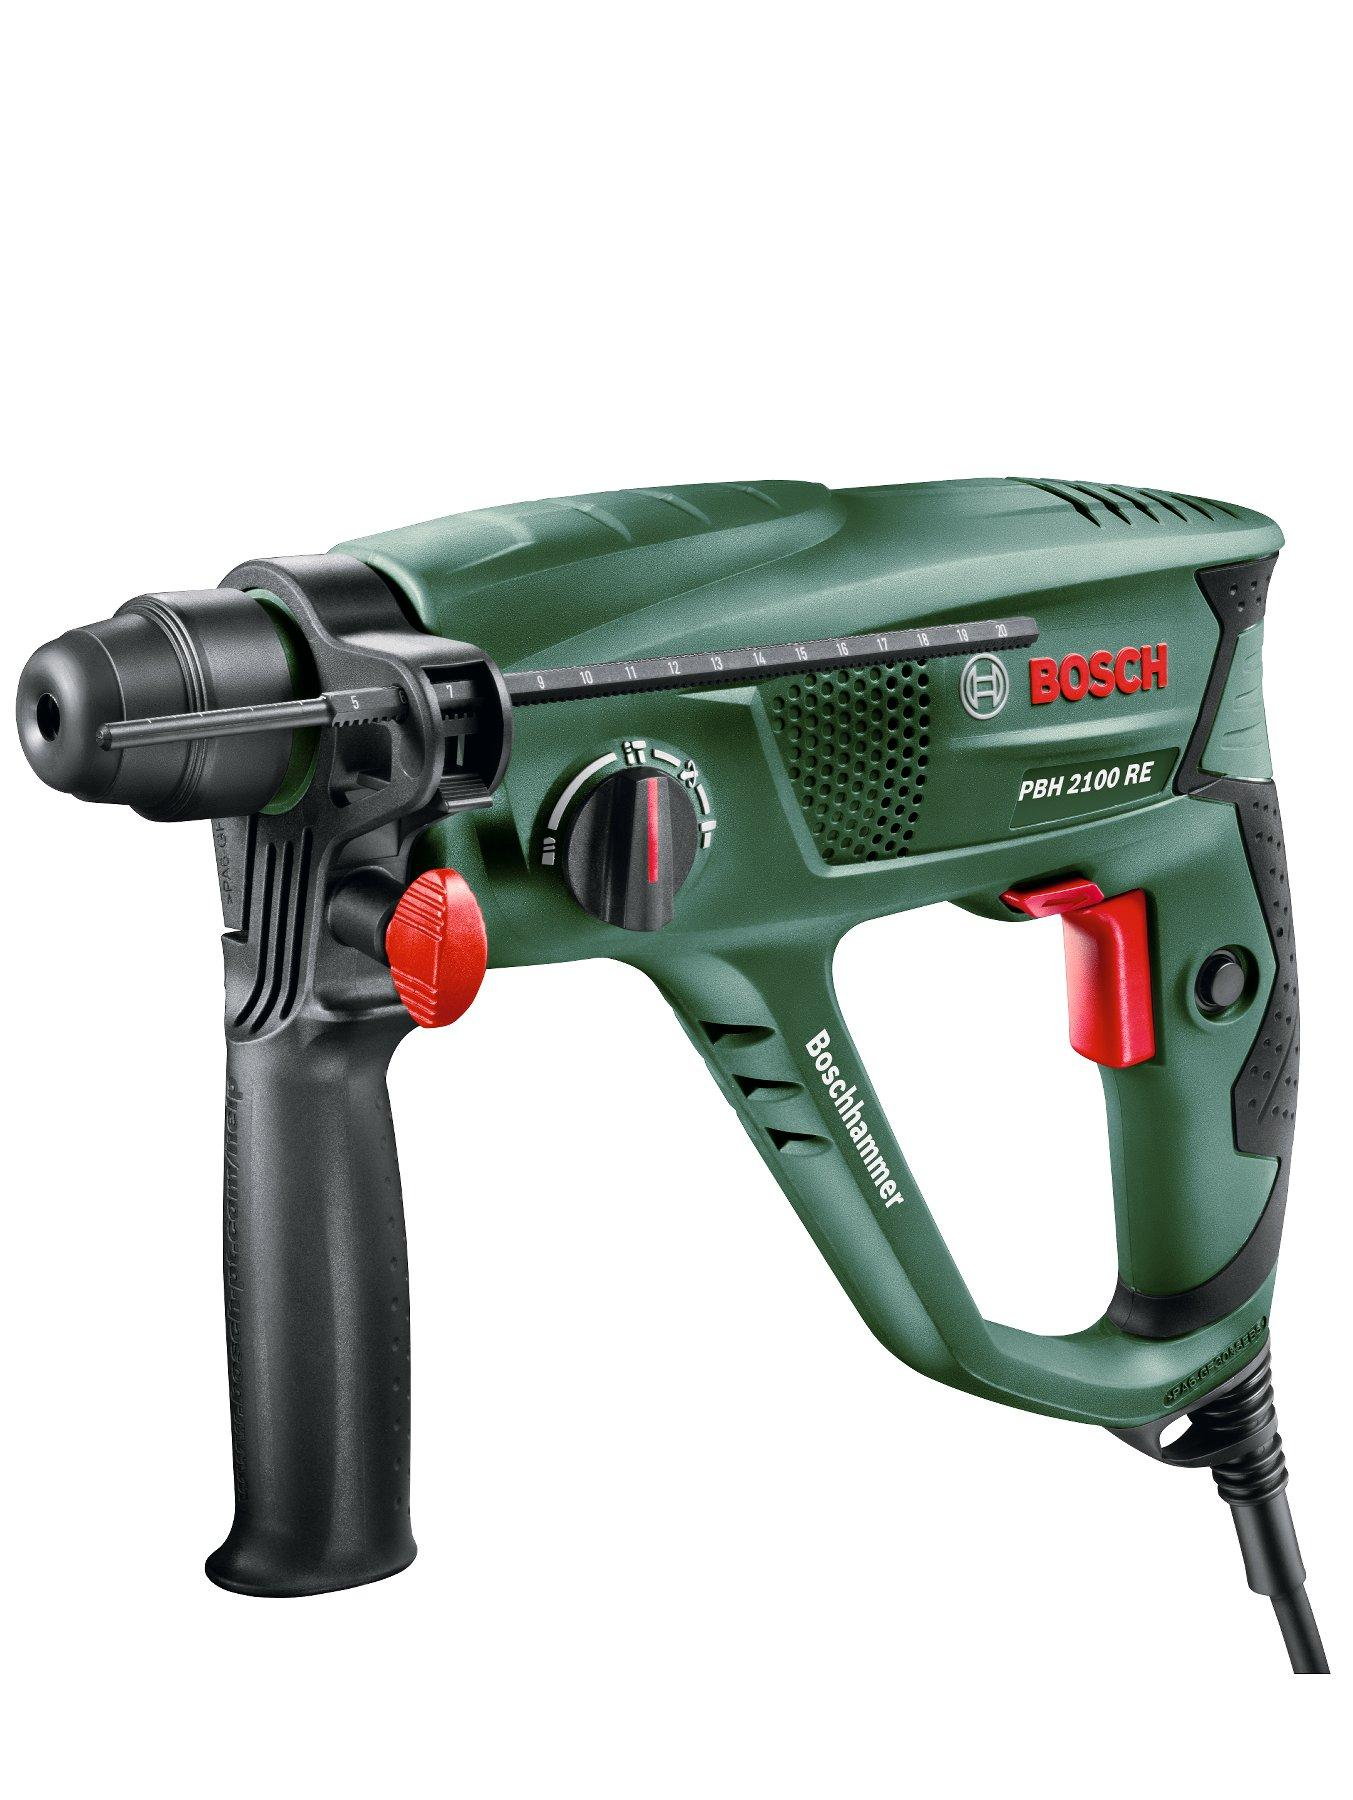 Bosch PBH 2100 RE 550-watt Rotary Hammer Drill